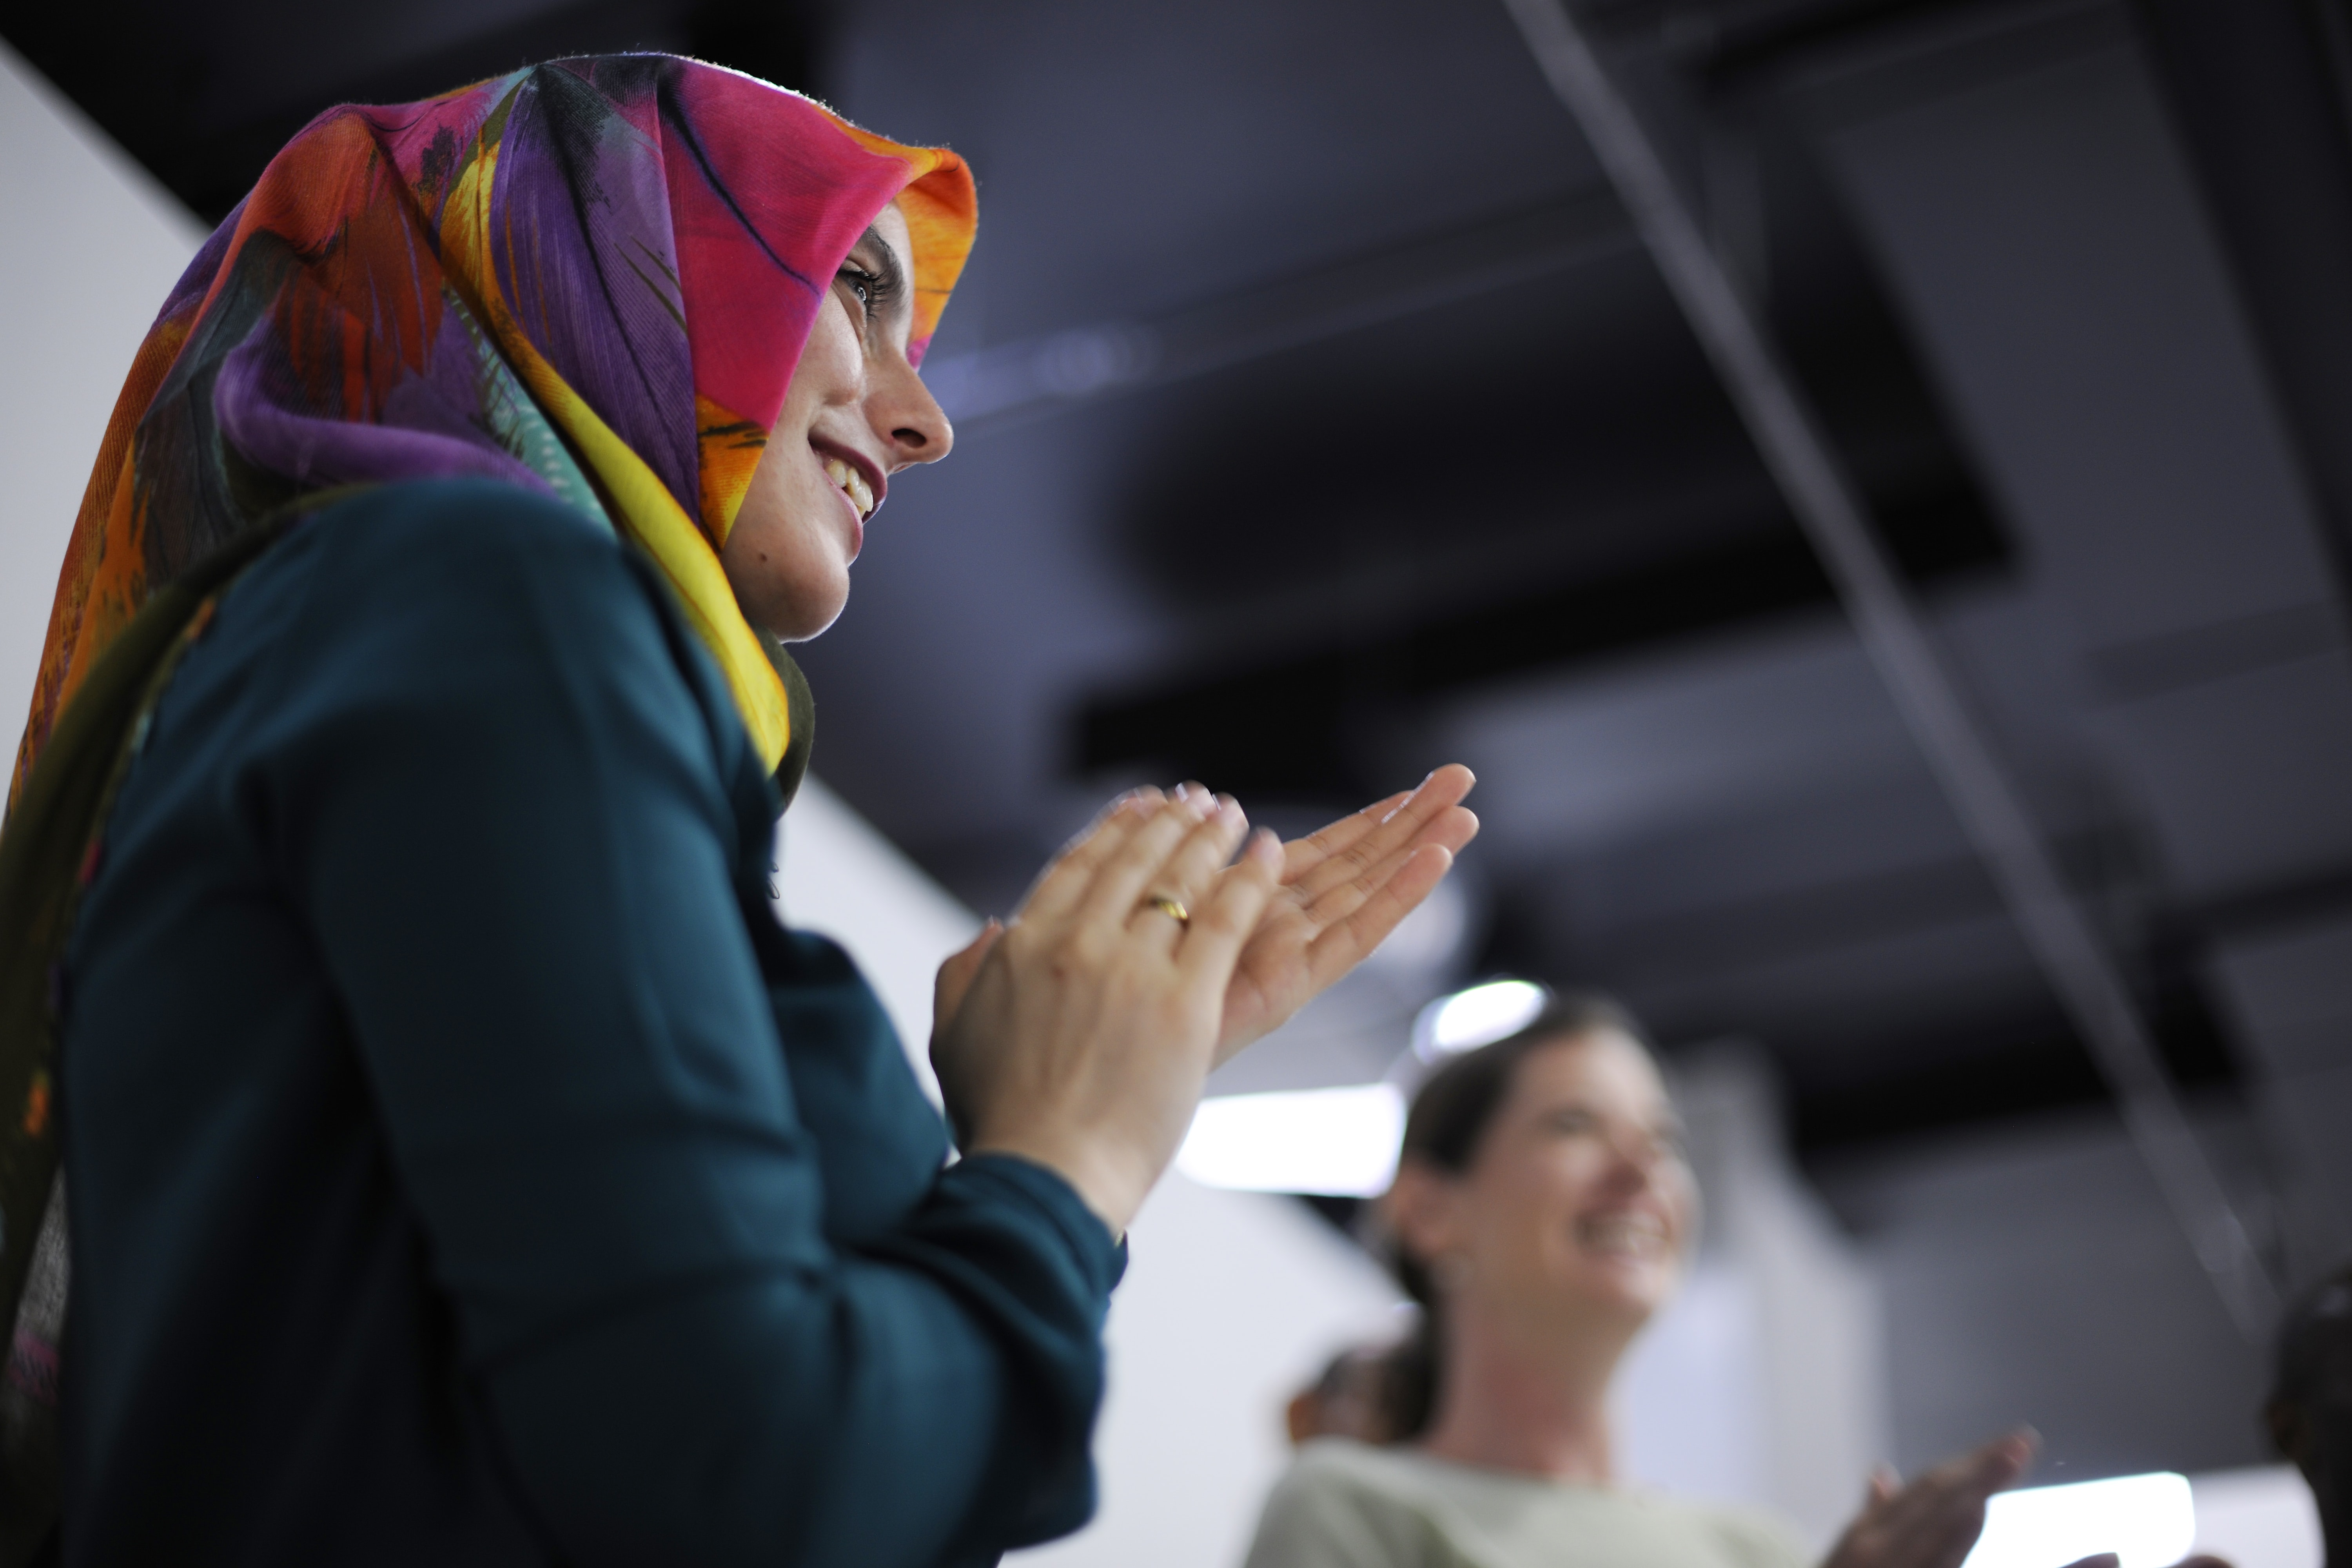 selective focus photography of woman clapping her hands inside room